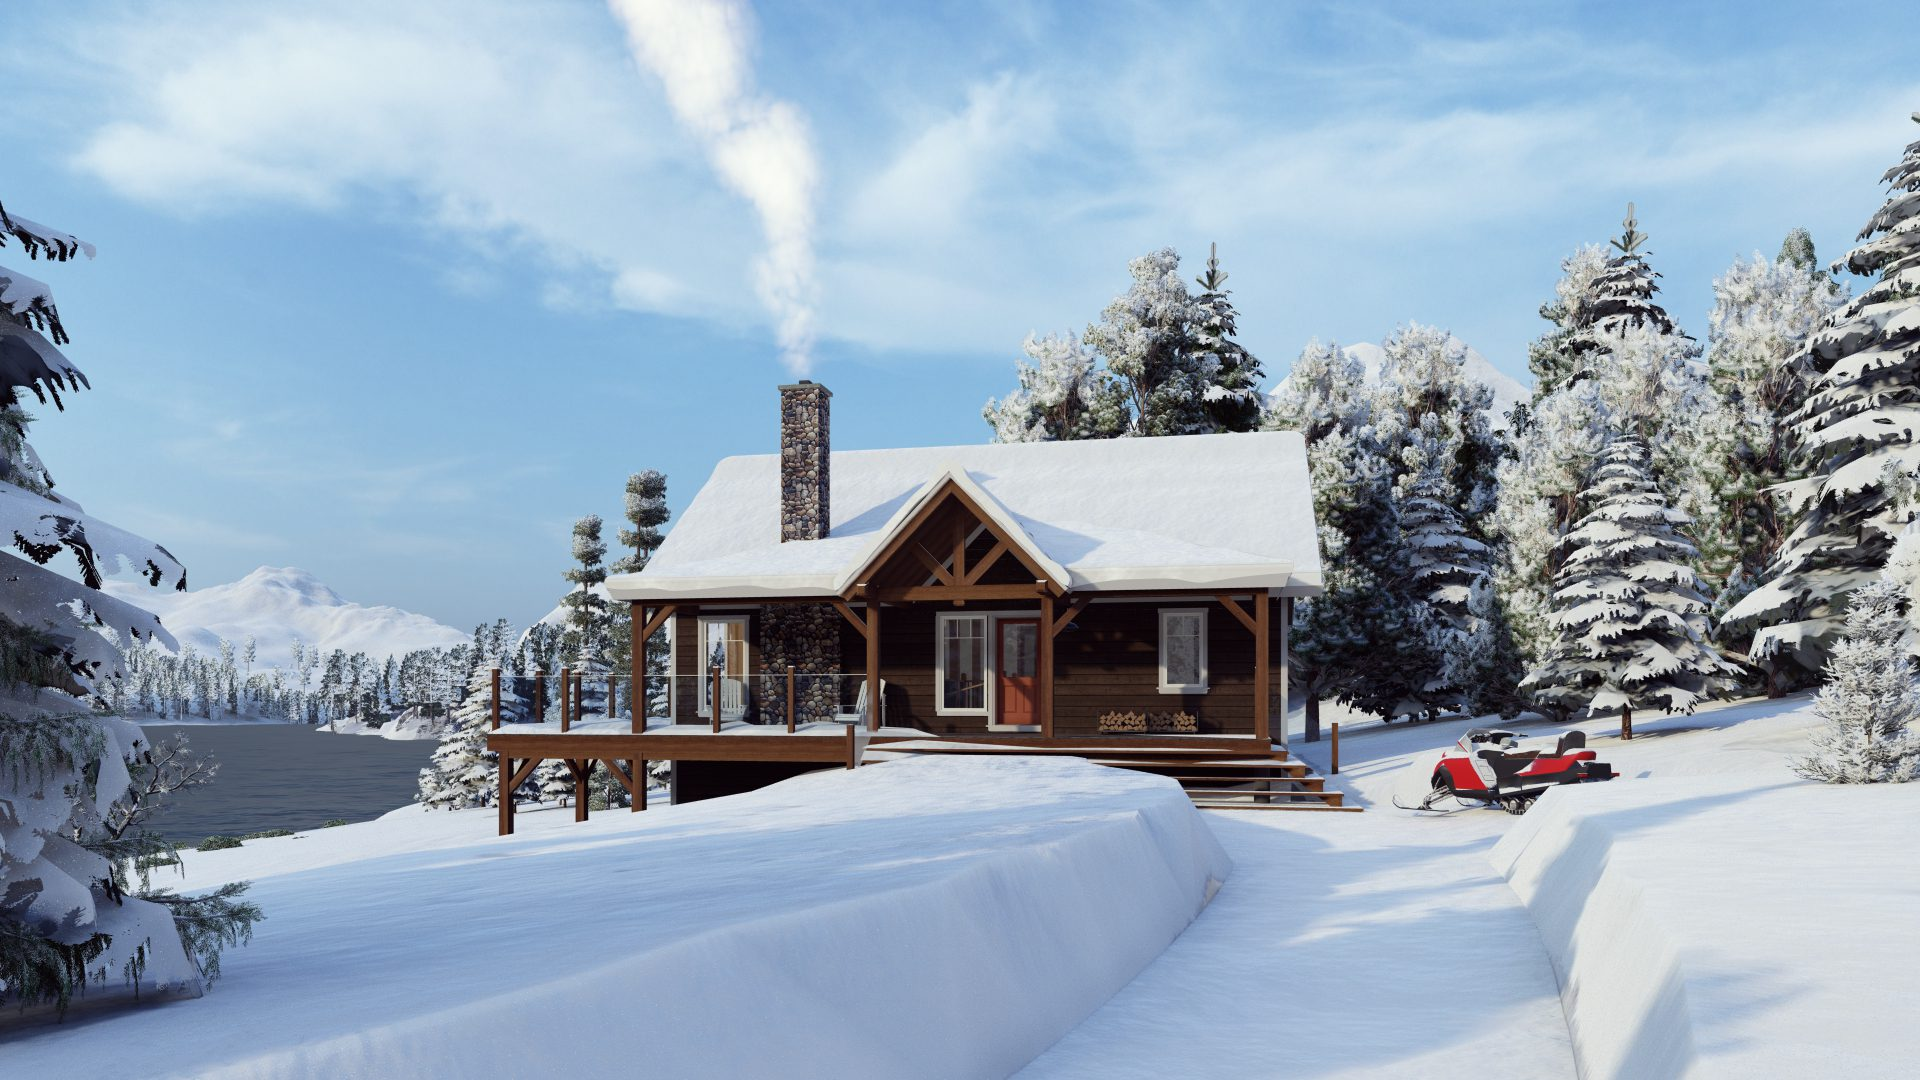 Timber Frame Open Concept House Plans   The Rouge   Normerica   Exterior, Front, Winter